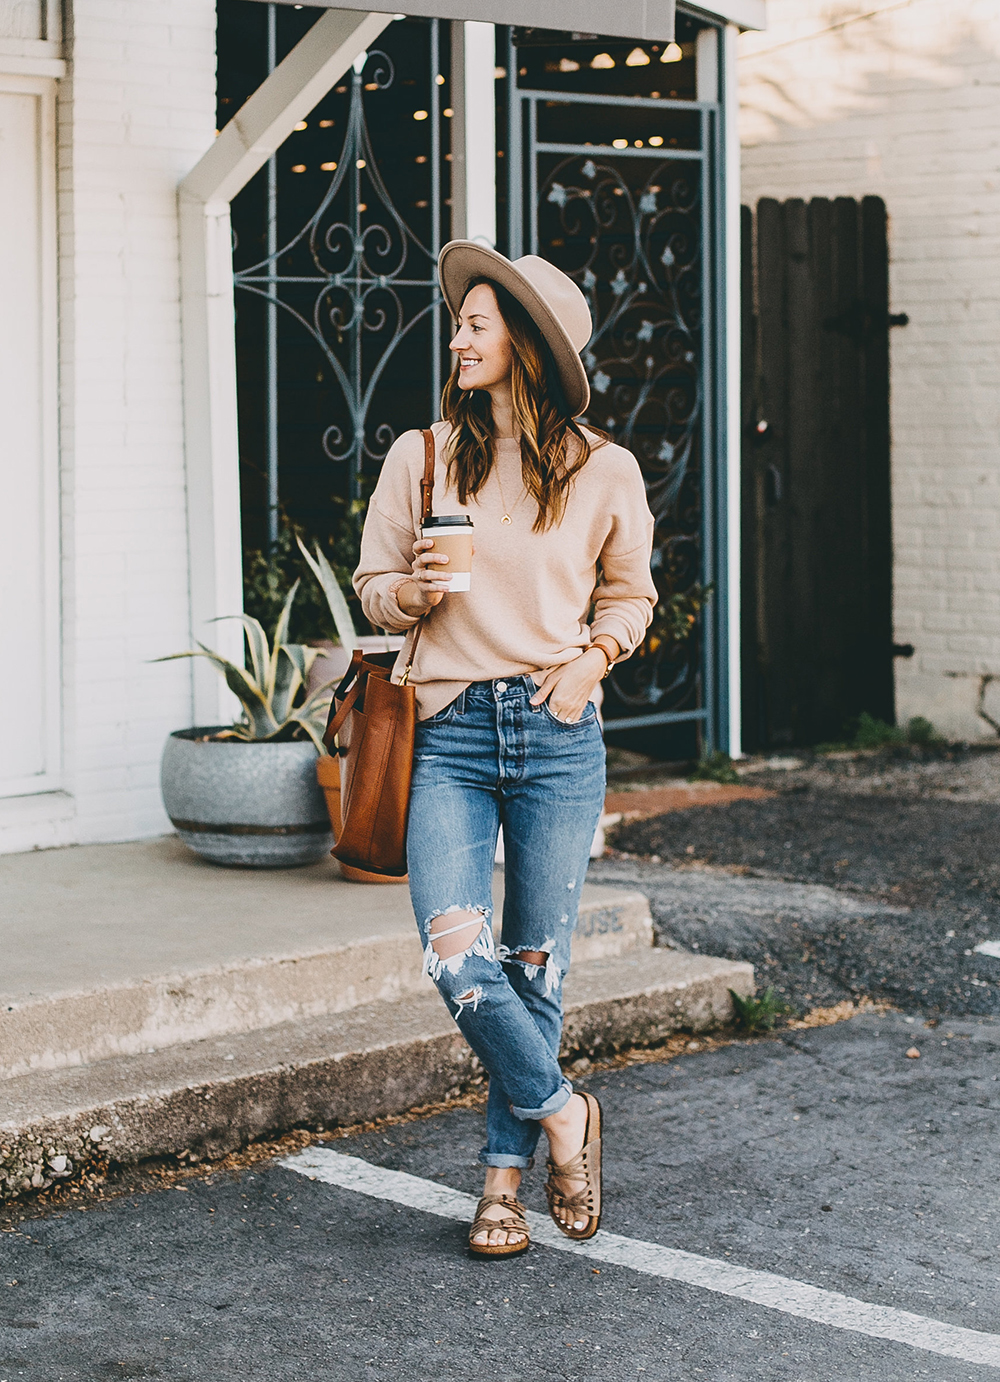 livvyland-blog-olivia-watson-austin-texas-fashion-blogger-madewell-peach-sweatshirt-medium-transport-tote-levis-501-jeans-4